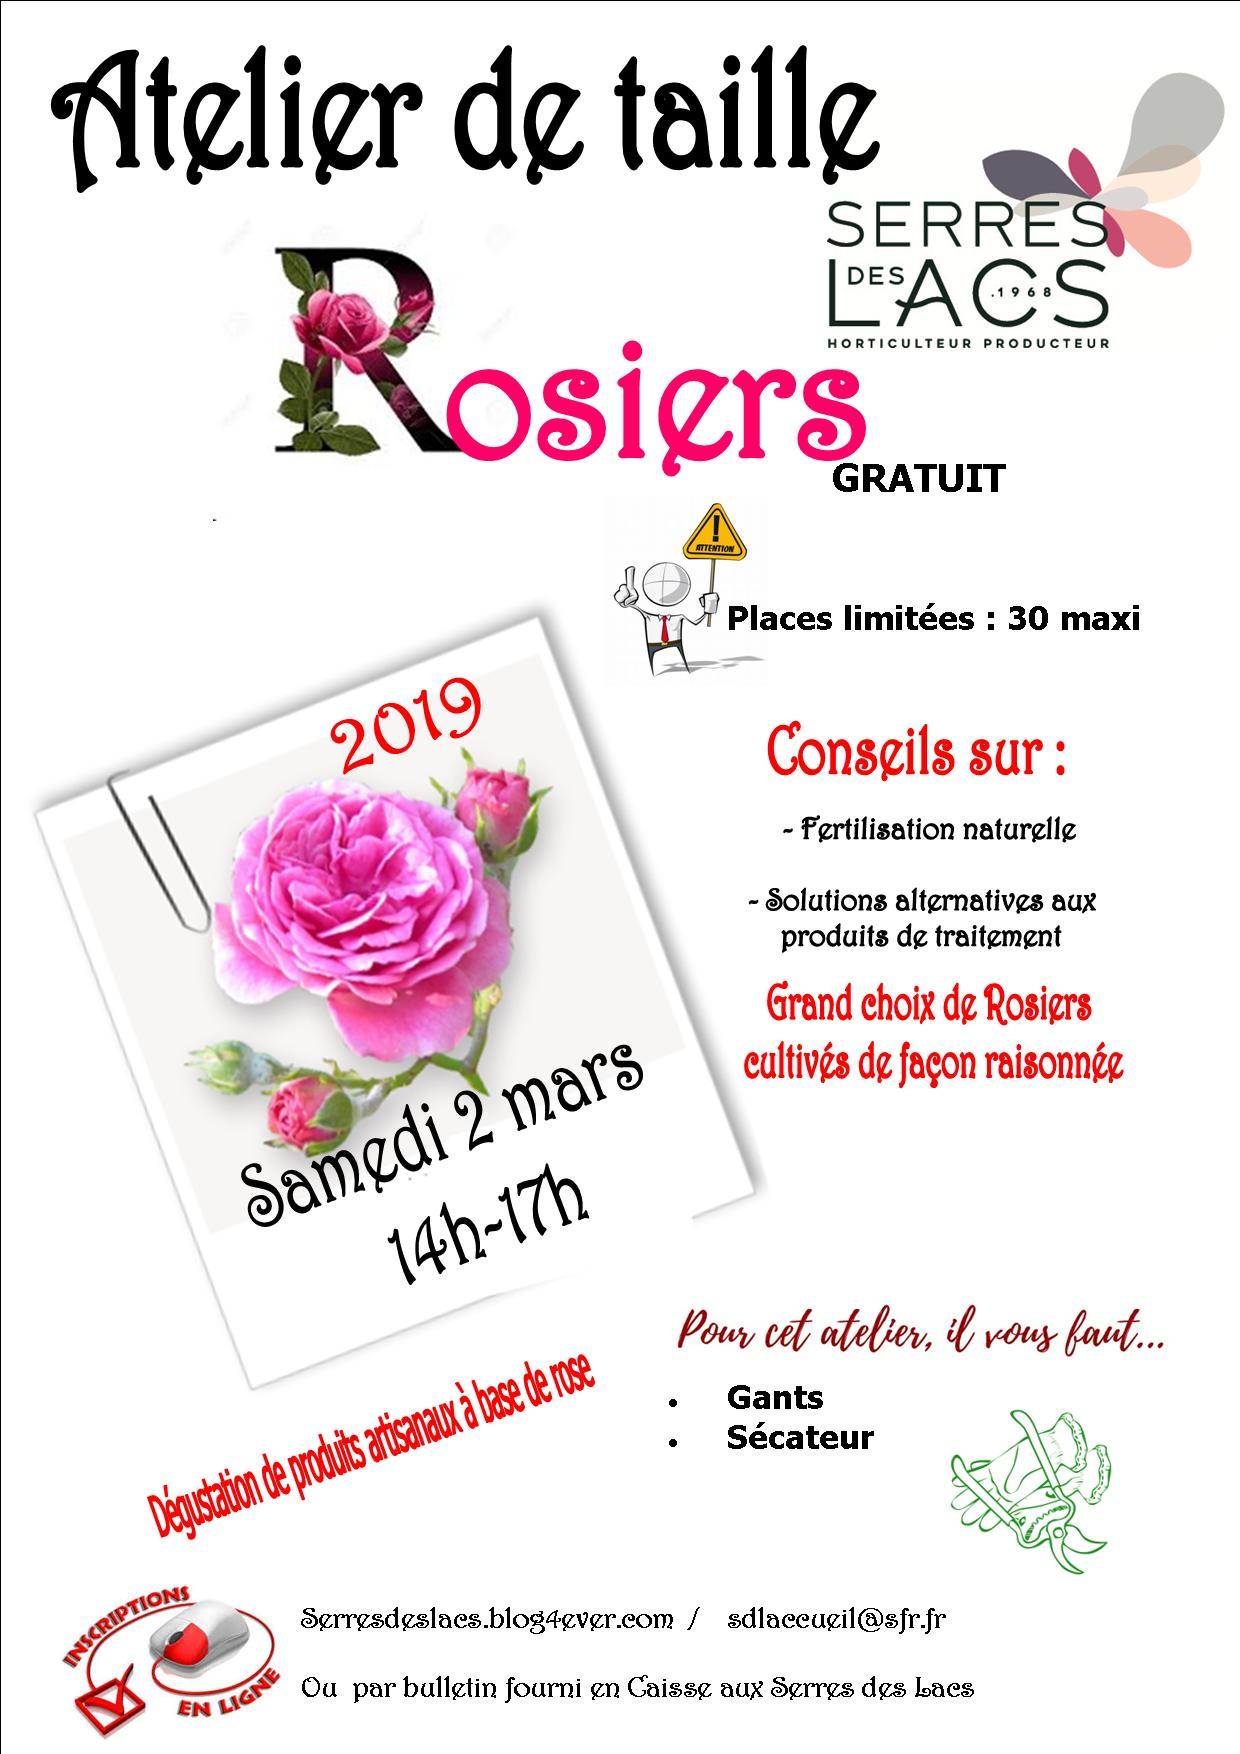 https://static.blog4ever.com/2009/05/320262/atelier-taille-rosier-format-A4-2019.jpg